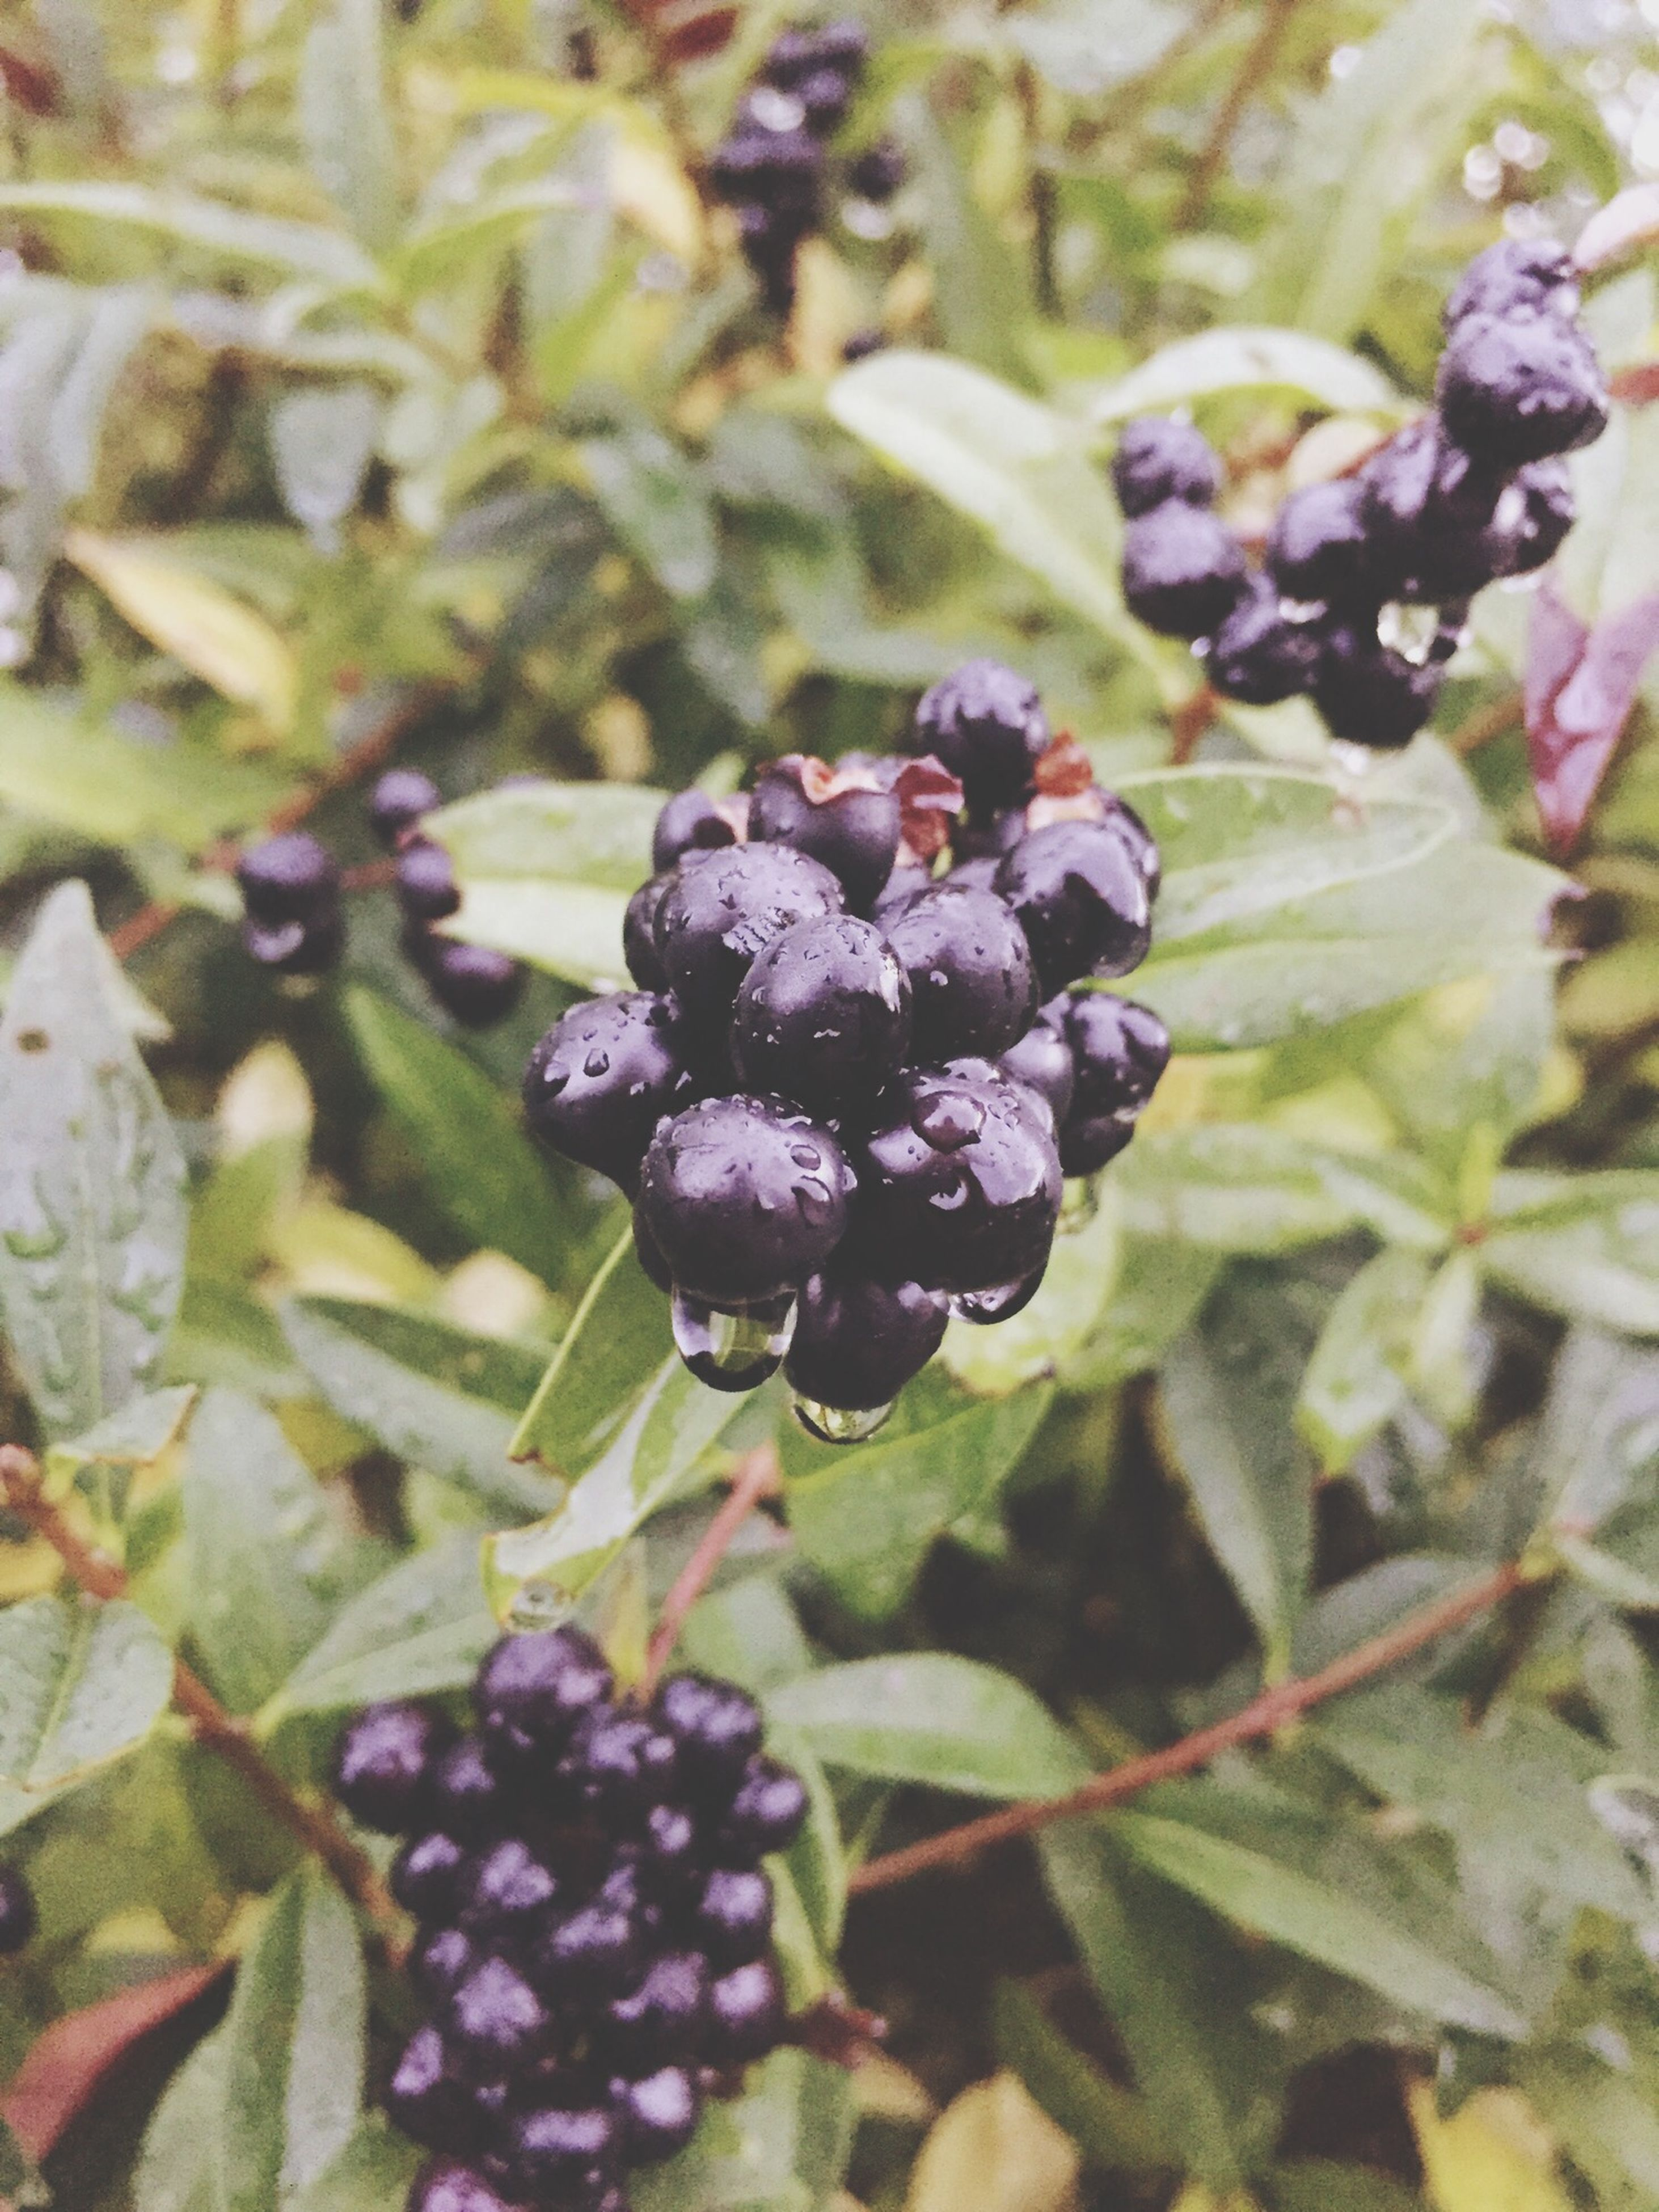 freshness, food and drink, fruit, growth, food, close-up, purple, flower, plant, beauty in nature, healthy eating, leaf, focus on foreground, nature, berry fruit, fragility, growing, no people, selective focus, bud